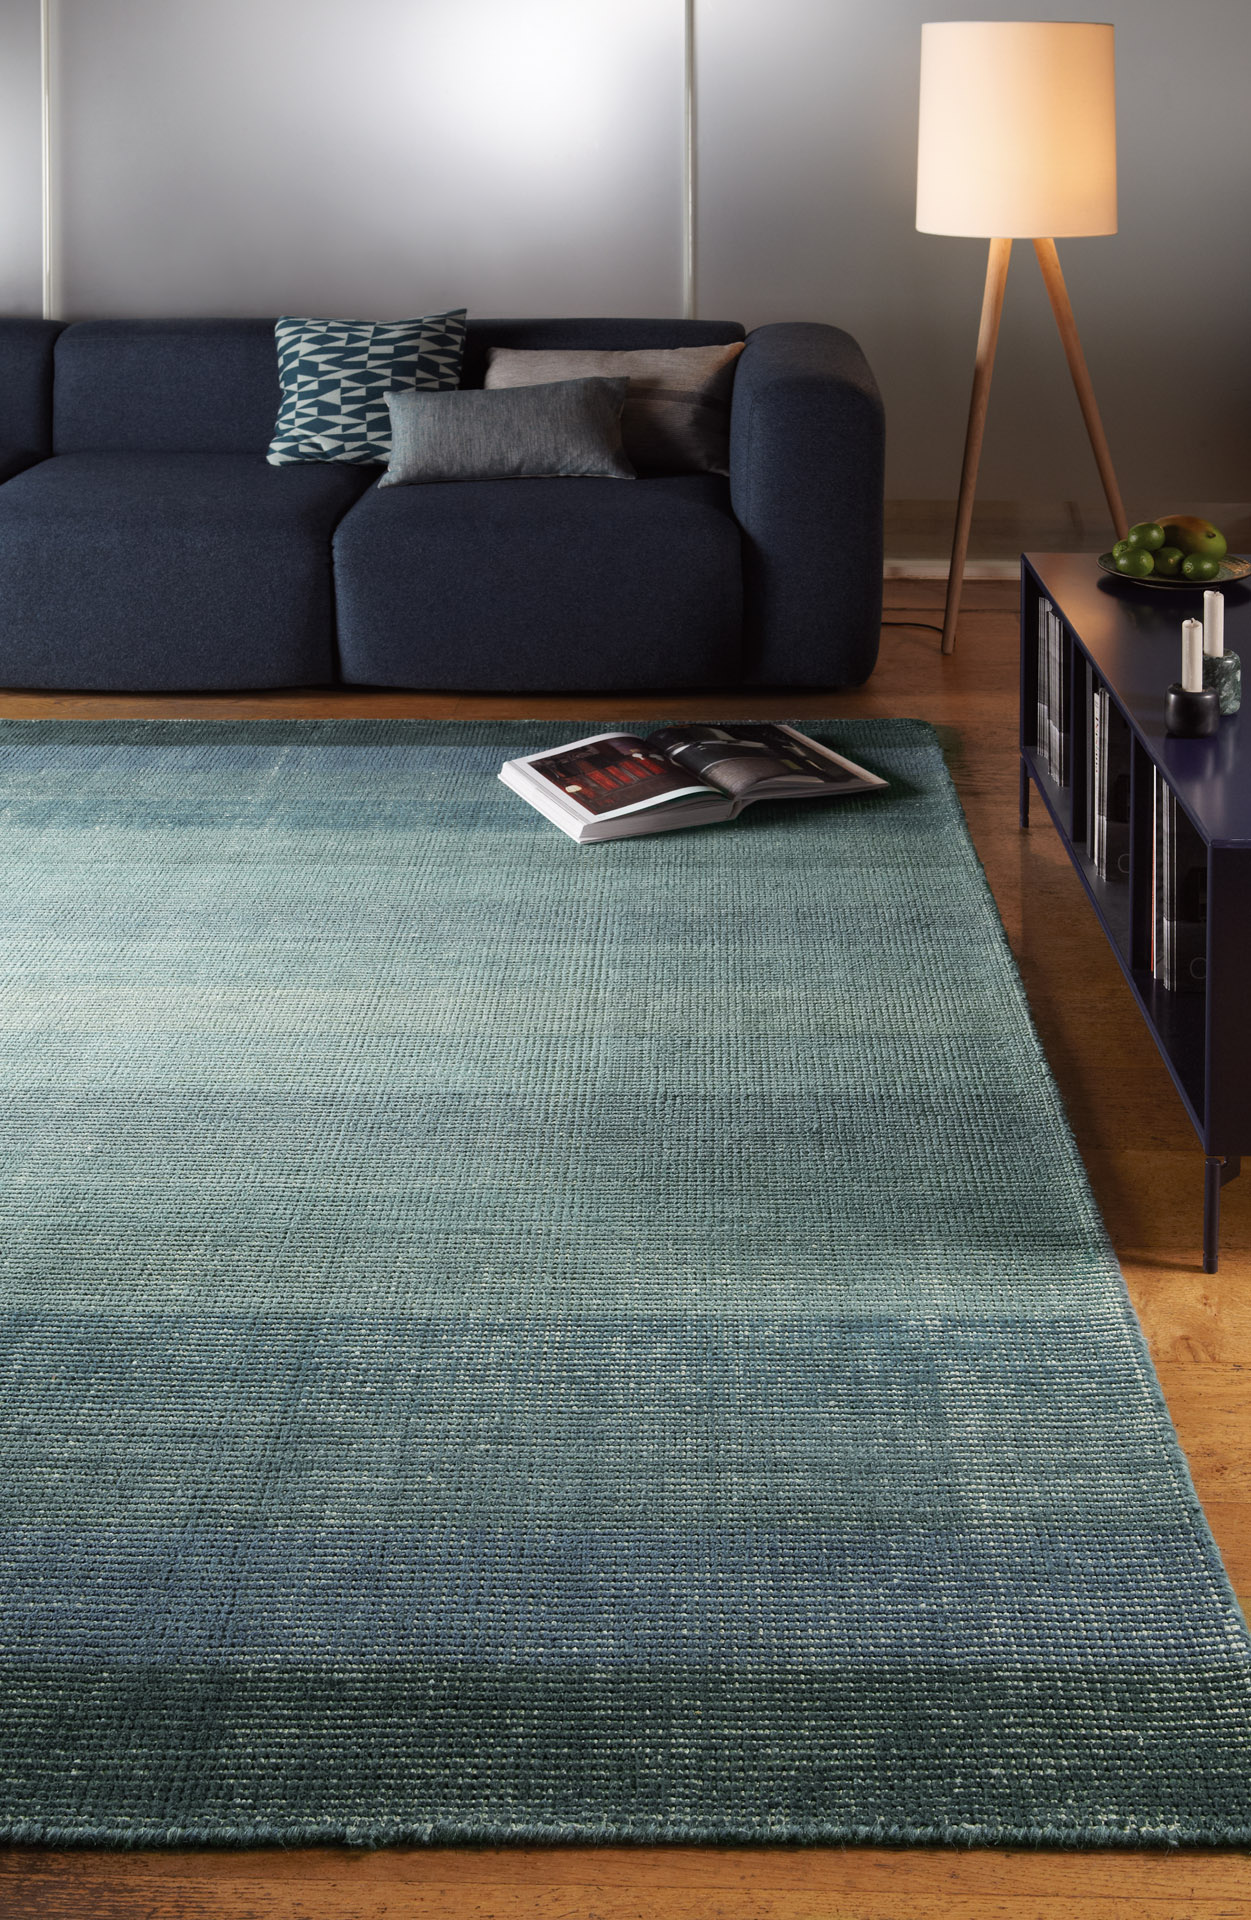 willey cezanne in stylish reviews art rc large moderne furniture rug interior network torino x modern navy ombre webster blue area temple